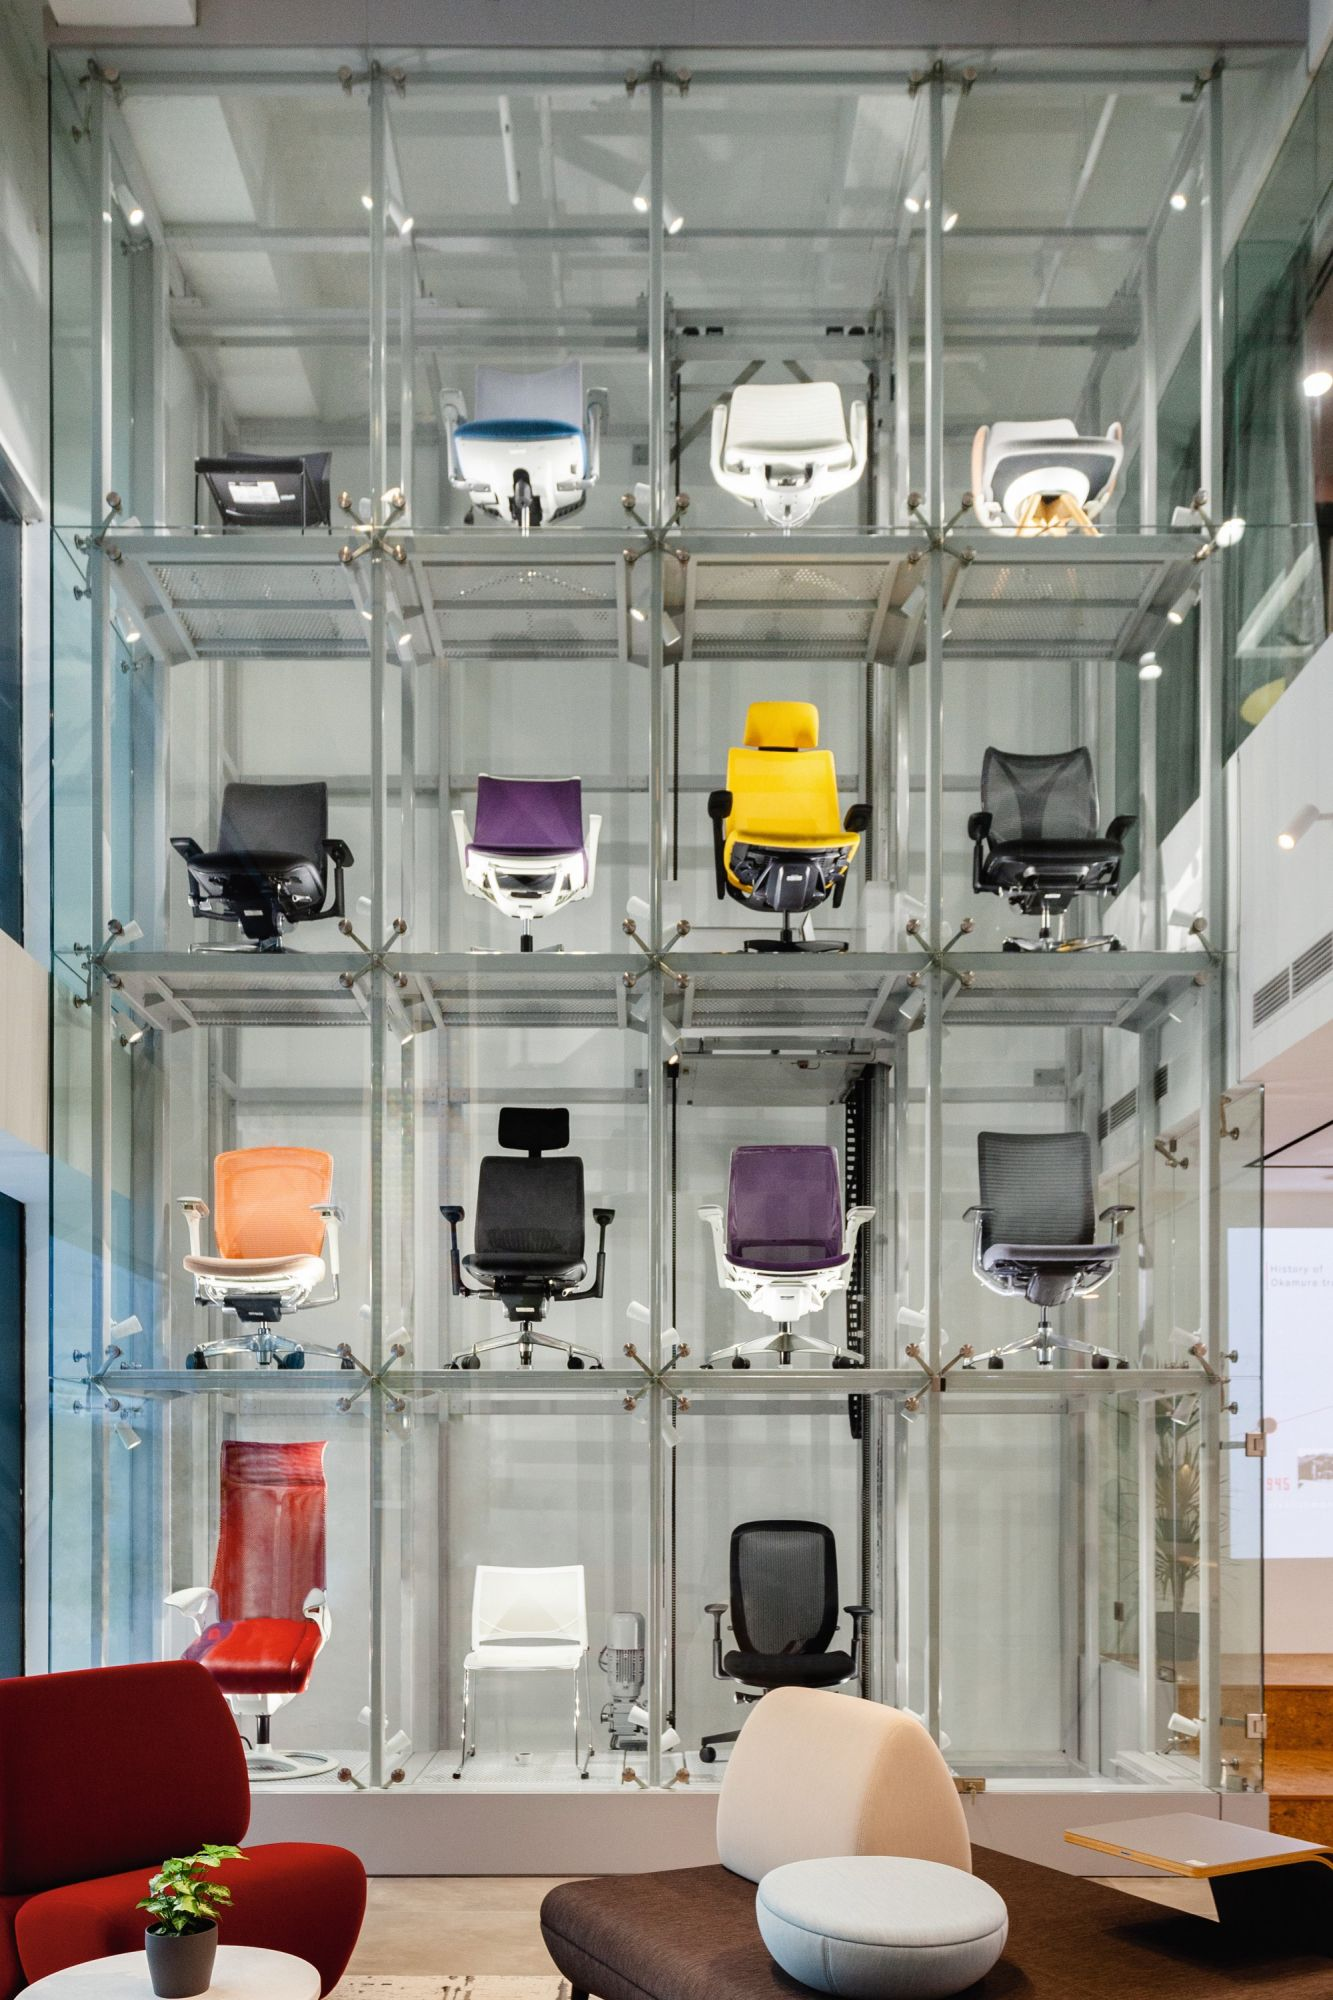 The Okamura Singapore showroom features a chair display inspired by the gachapon vending machines popular in Japan